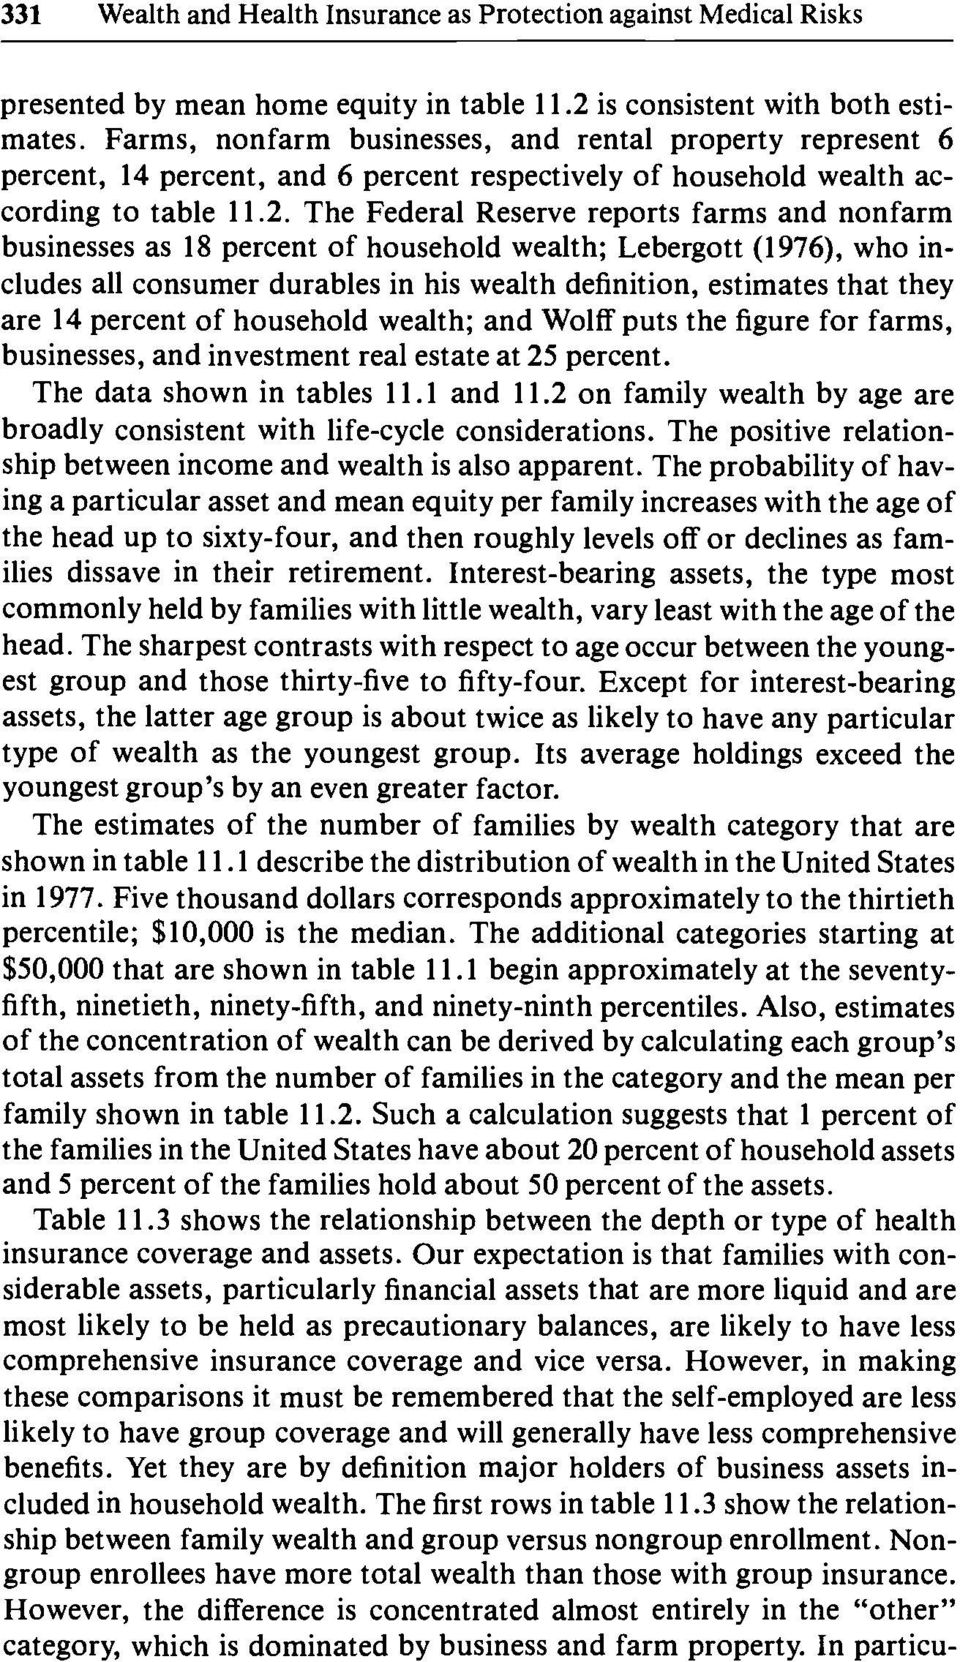 The Federal Reserve reports farms and nonfarm businesses as 18 percent of household wealth; Lebergott (1976), who includes all consumer durables in his wealth definition, estimates that they are 14